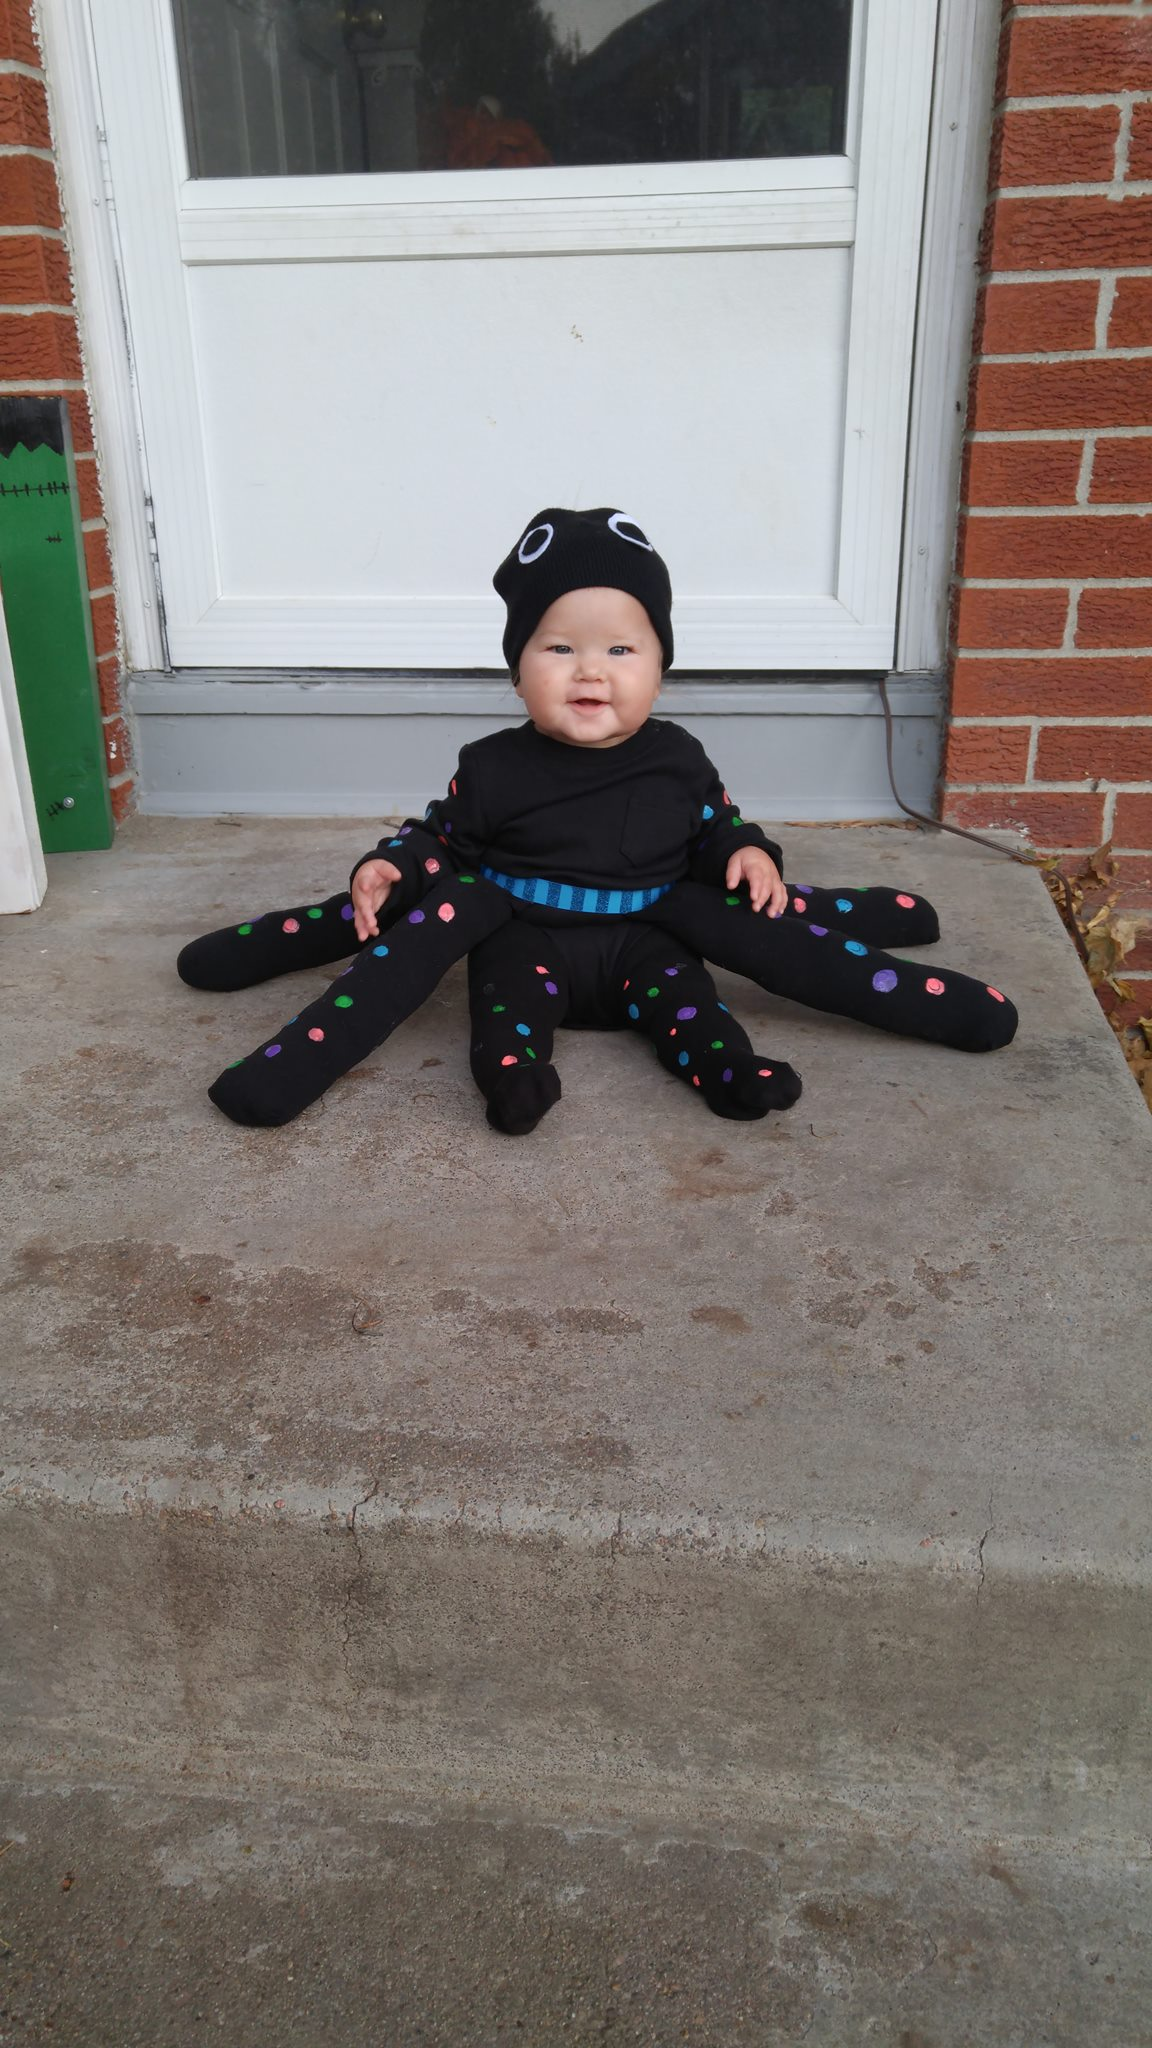 Baby girl wearing octopus Halloween costume sits on porch and smiles.